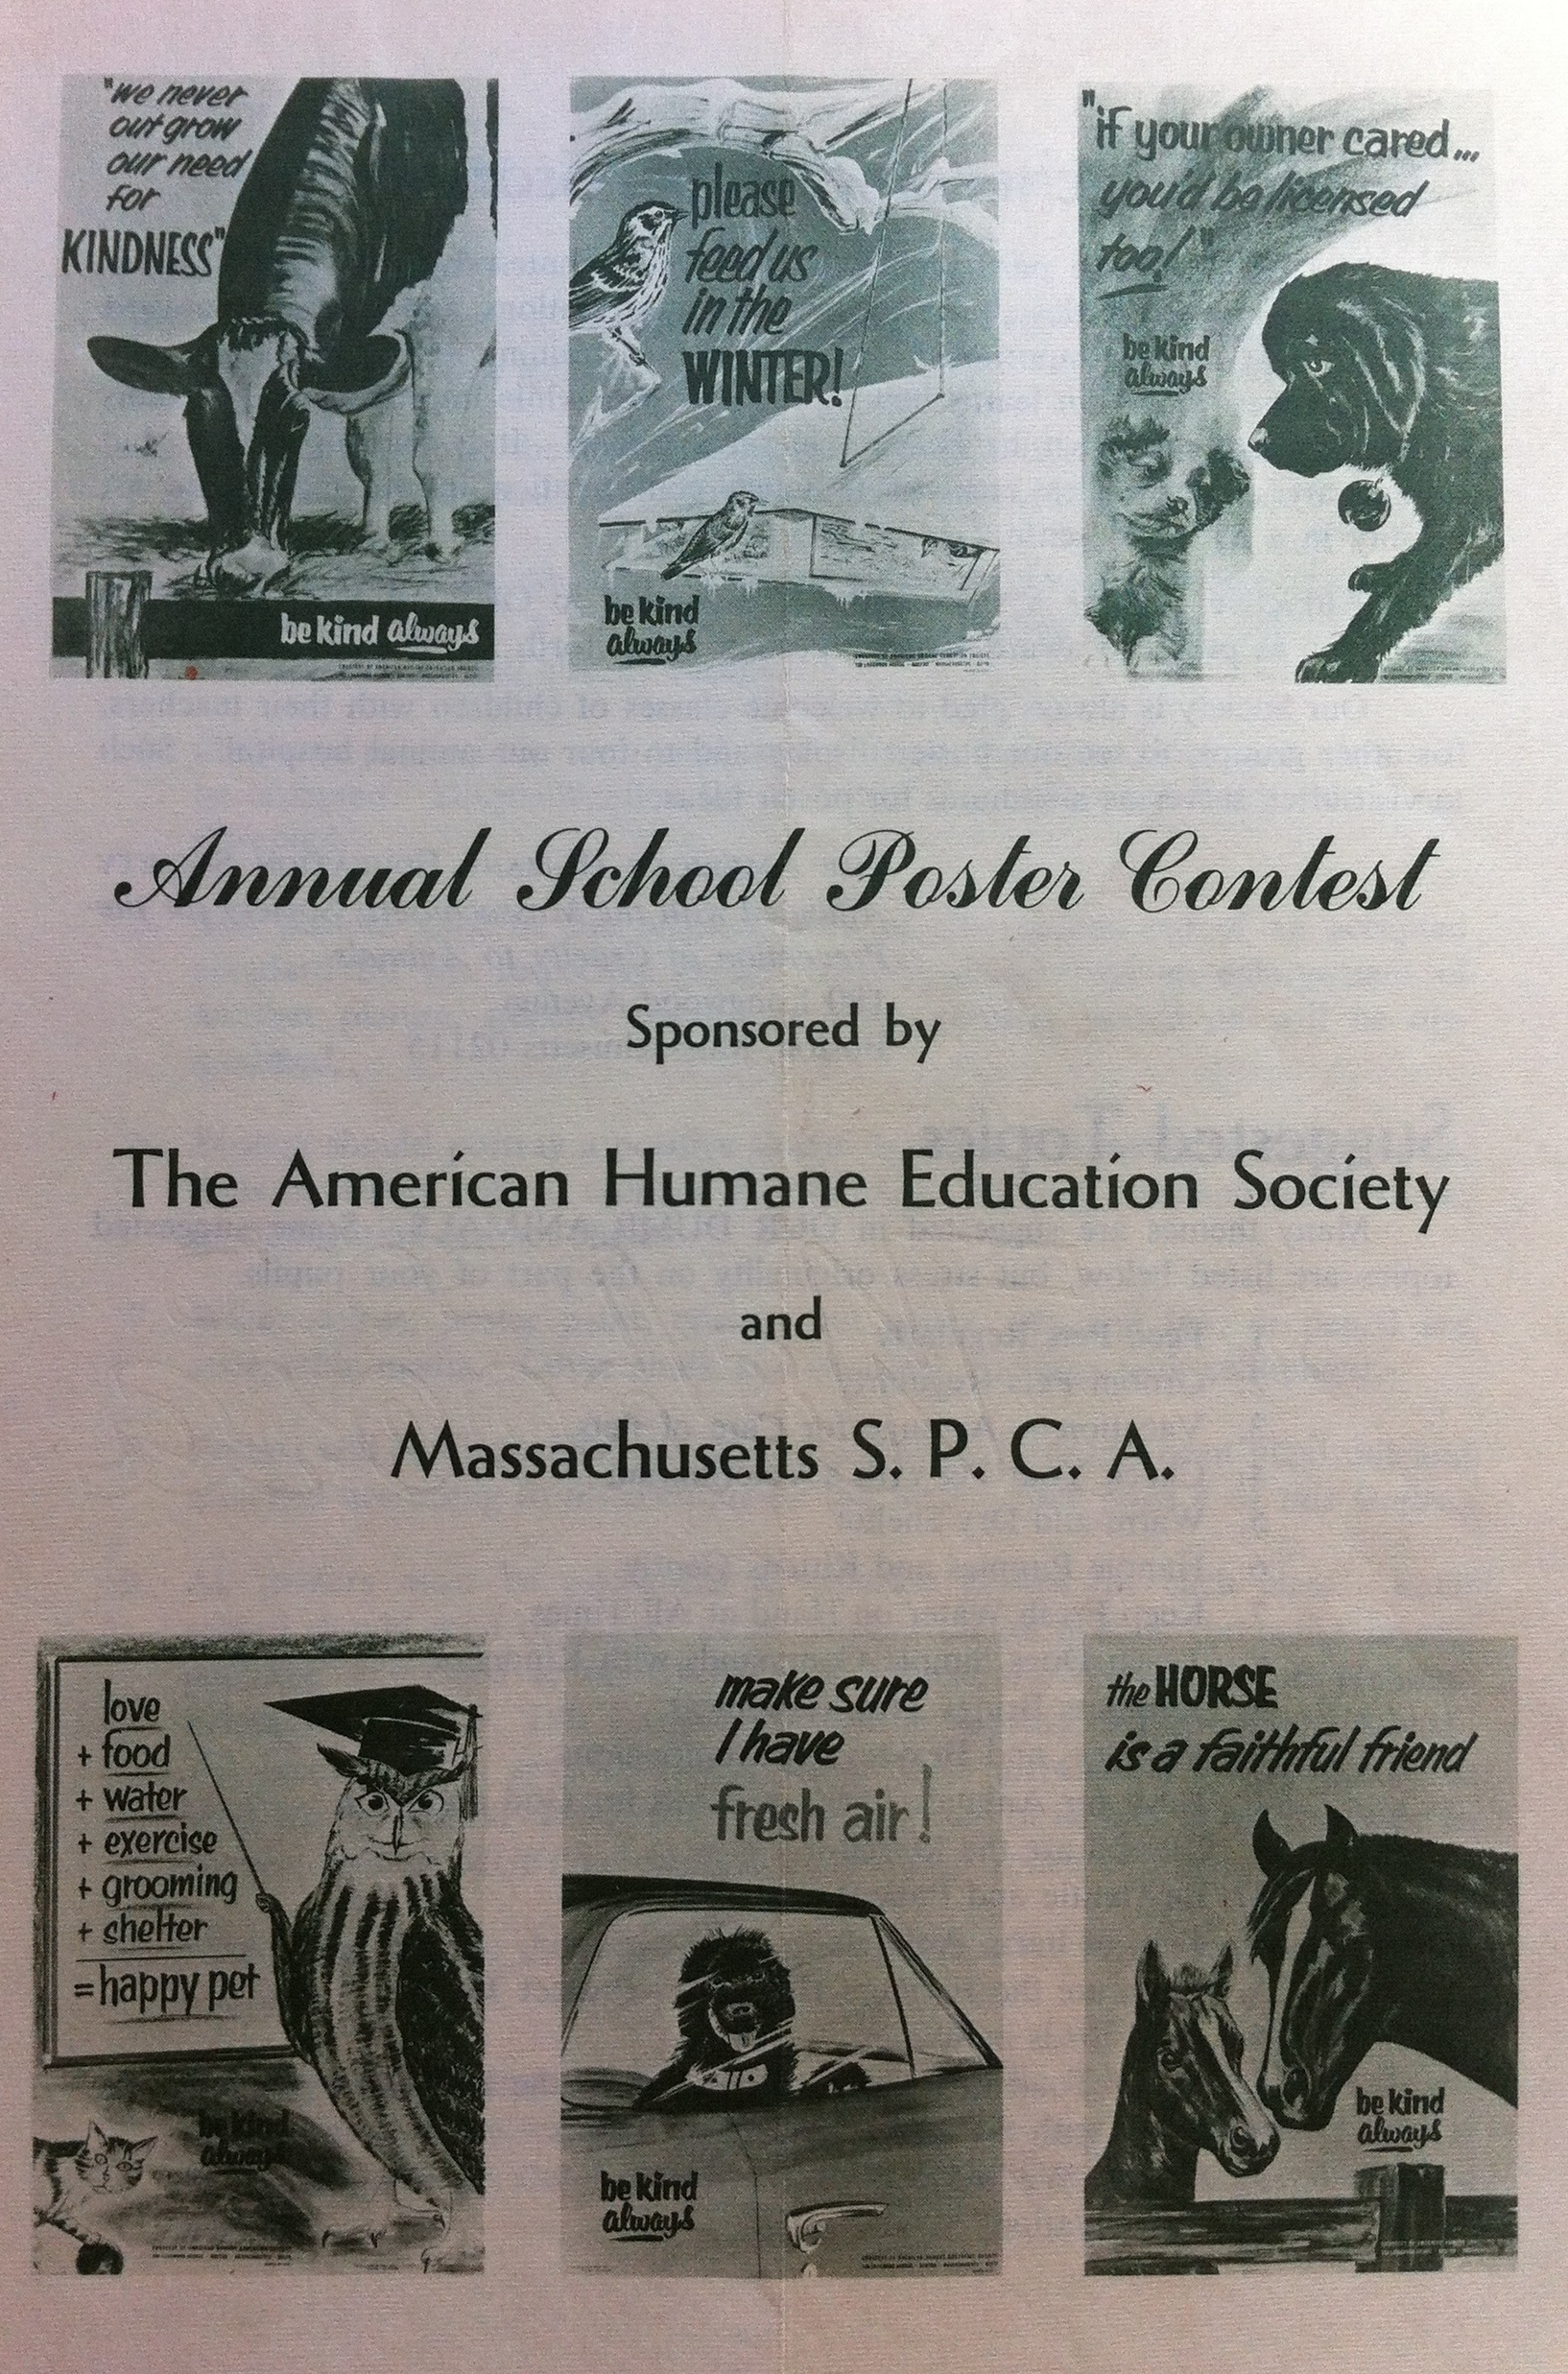 mspca and ahes poster contest brochure be kind a visual history  brochure